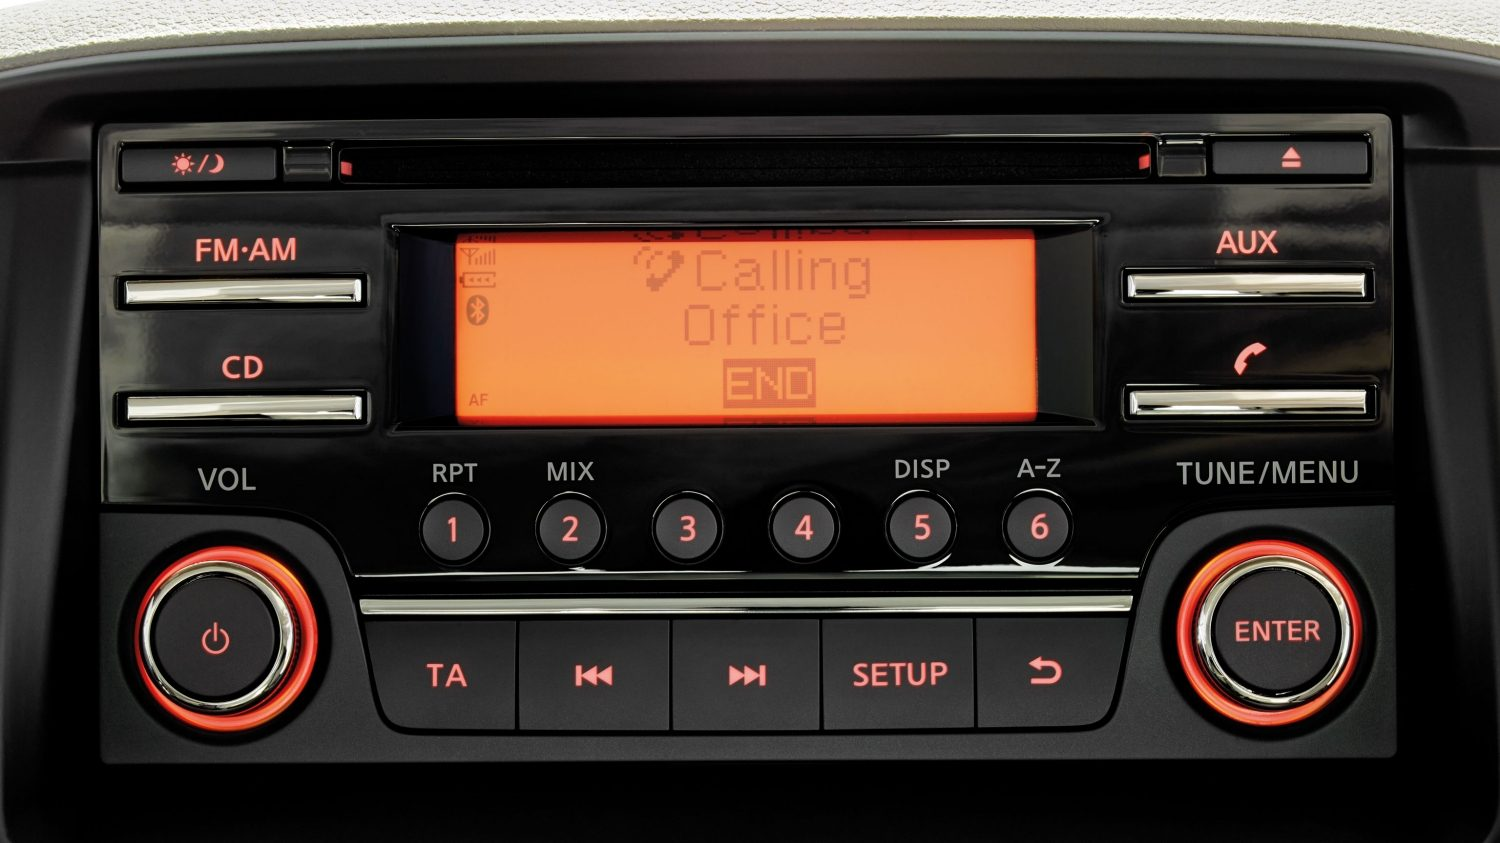 NISSAN NT400 – Bluetooth rádio/CD systém